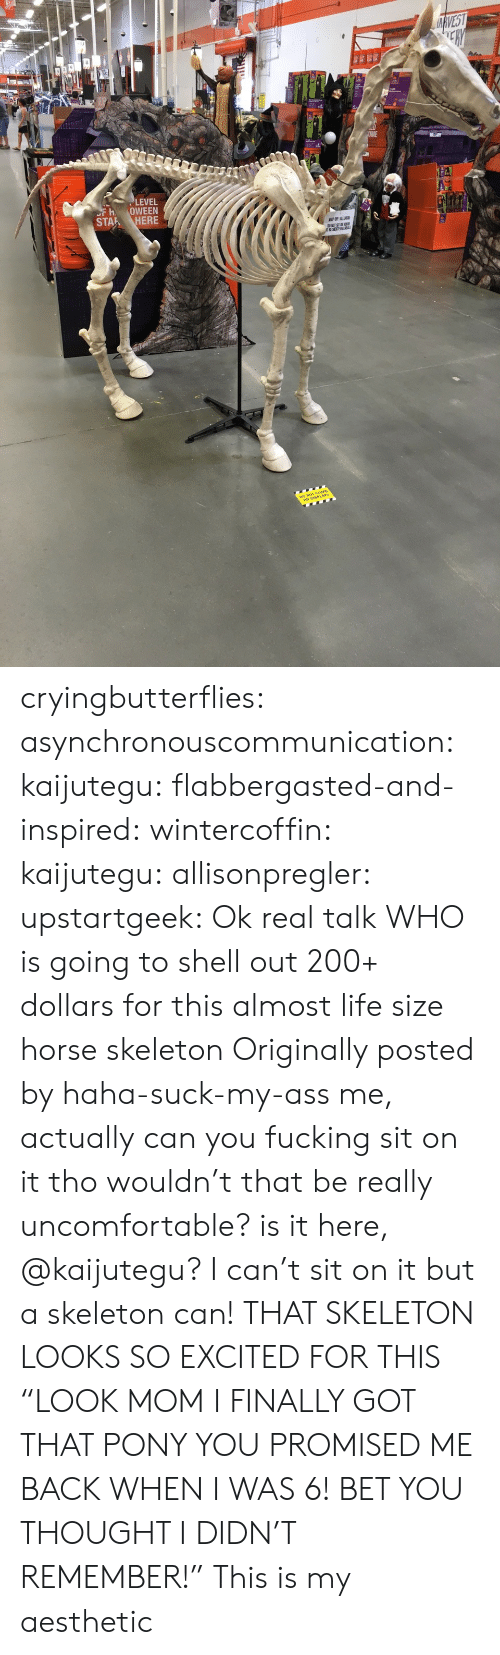 """Bailey Jay, Gif, and Life: ce  LEVEL  FH OWEEN  STAR ? HERE cryingbutterflies:  asynchronouscommunication:  kaijutegu:  flabbergasted-and-inspired:  wintercoffin:  kaijutegu:  allisonpregler:  upstartgeek:  Ok real talk WHO is going to shell out 200+ dollars for this almost life size horse skeleton  Originally posted by haha-suck-my-ass  me, actually  can you fucking sit on it tho  wouldn't that be really uncomfortable? is it here, @kaijutegu?  I can't sit on it but a skeleton can!  THAT SKELETON LOOKS SO EXCITED FOR THIS  """"LOOK MOM I FINALLY GOT THAT PONY YOU PROMISED ME BACK WHEN I WAS 6! BET YOU THOUGHT I DIDN'T REMEMBER!""""   This is my aesthetic"""